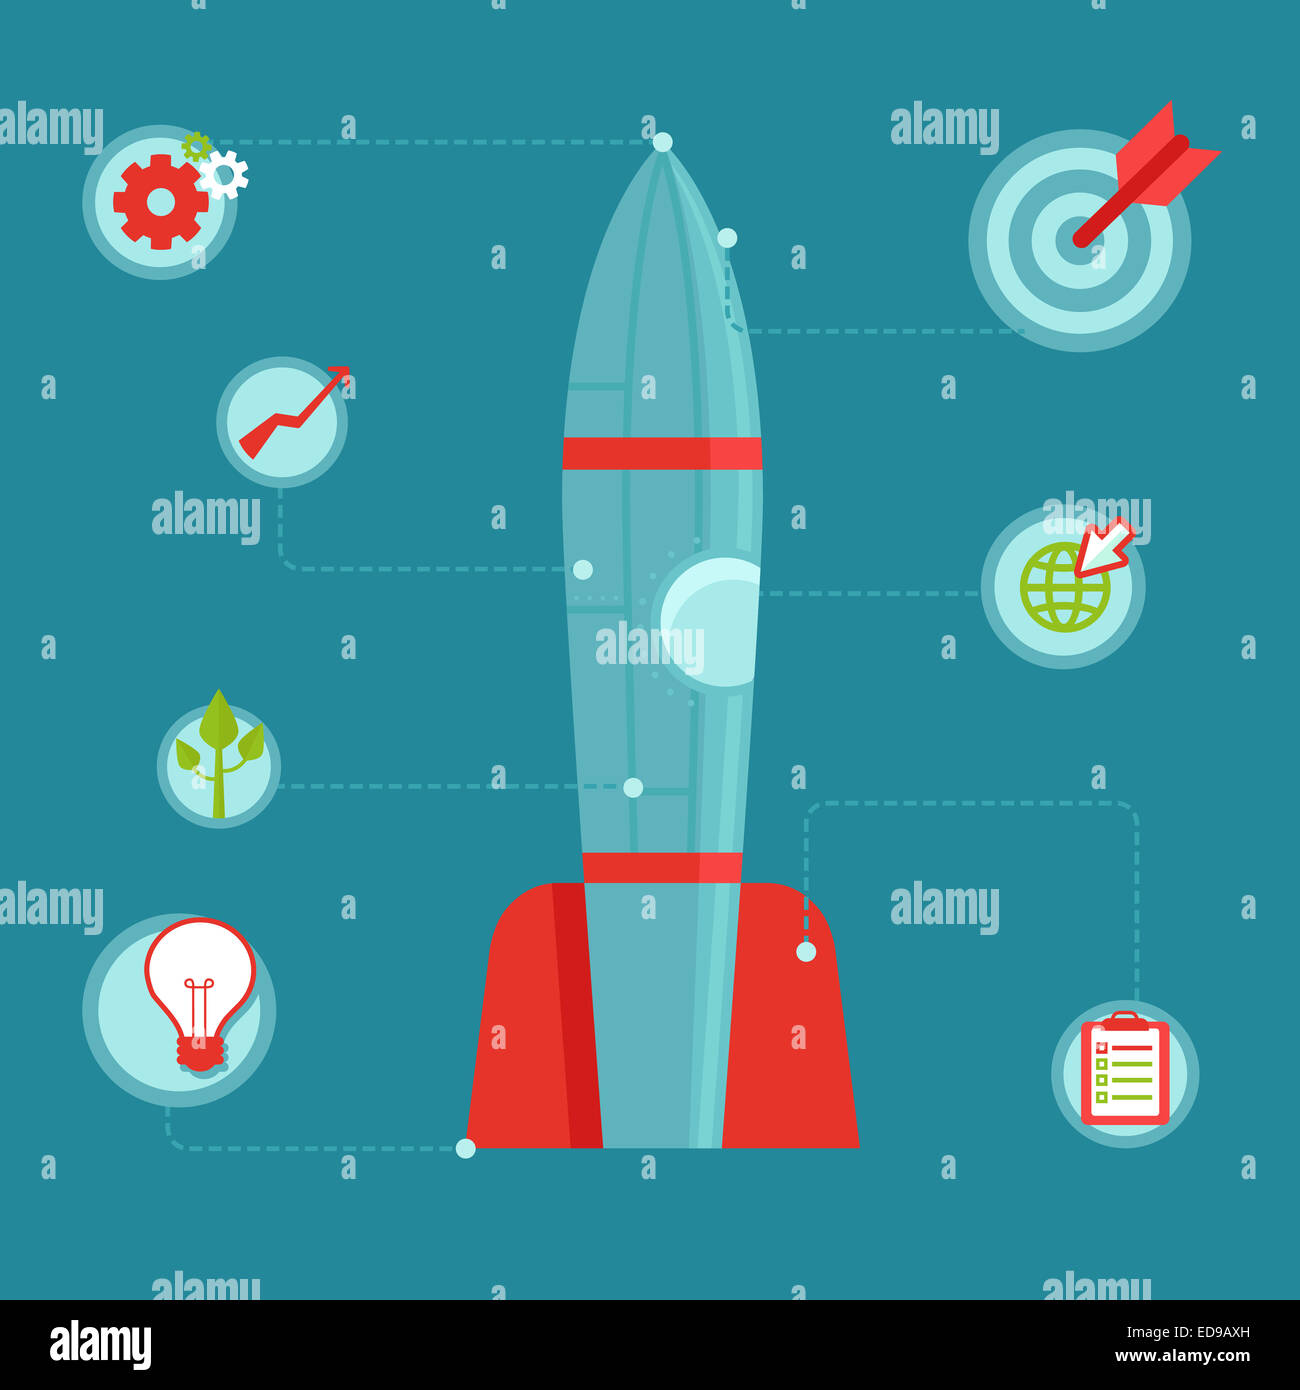 Start up concept in flat style - infographic design elements and icons - space rocket and strategy - Stock Image